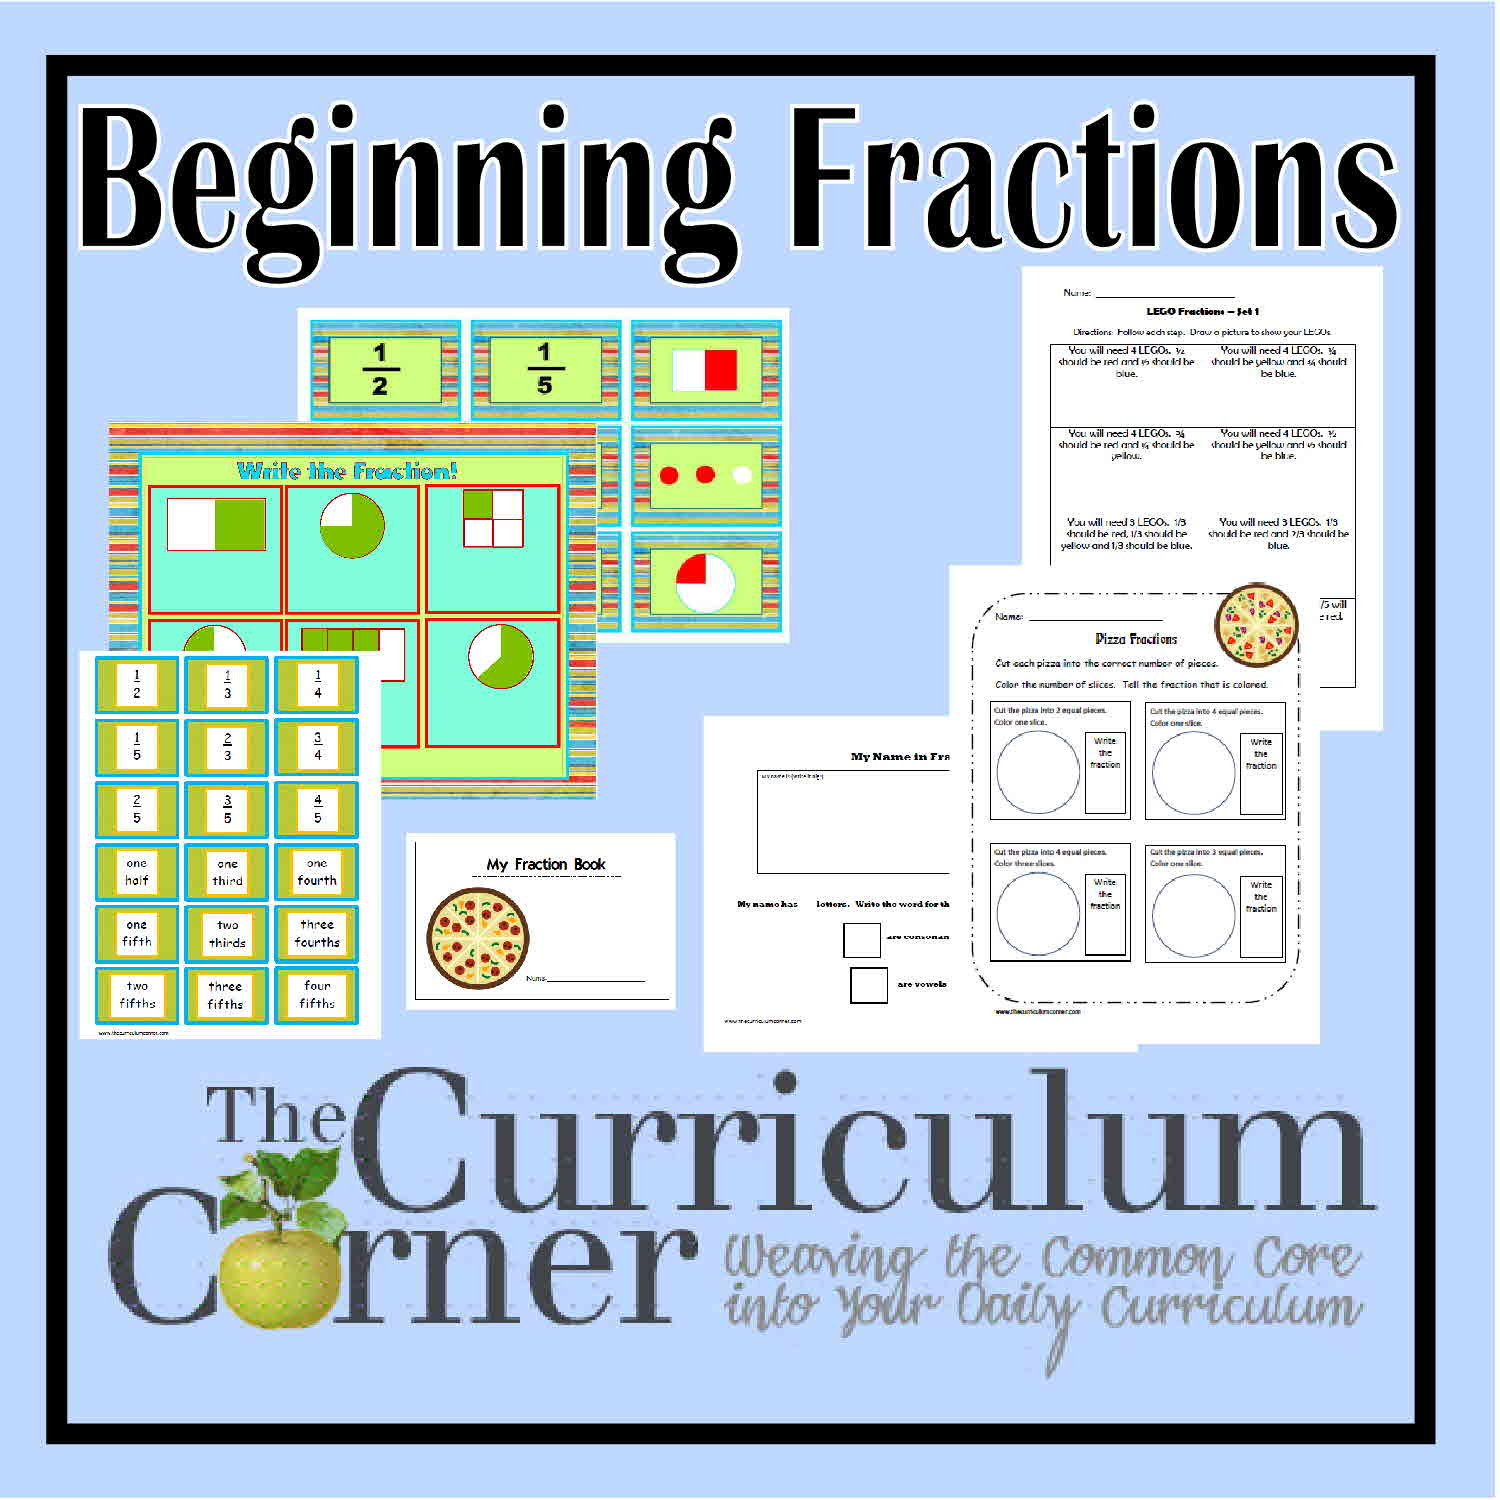 Homework help fractions | Contour Cleaning